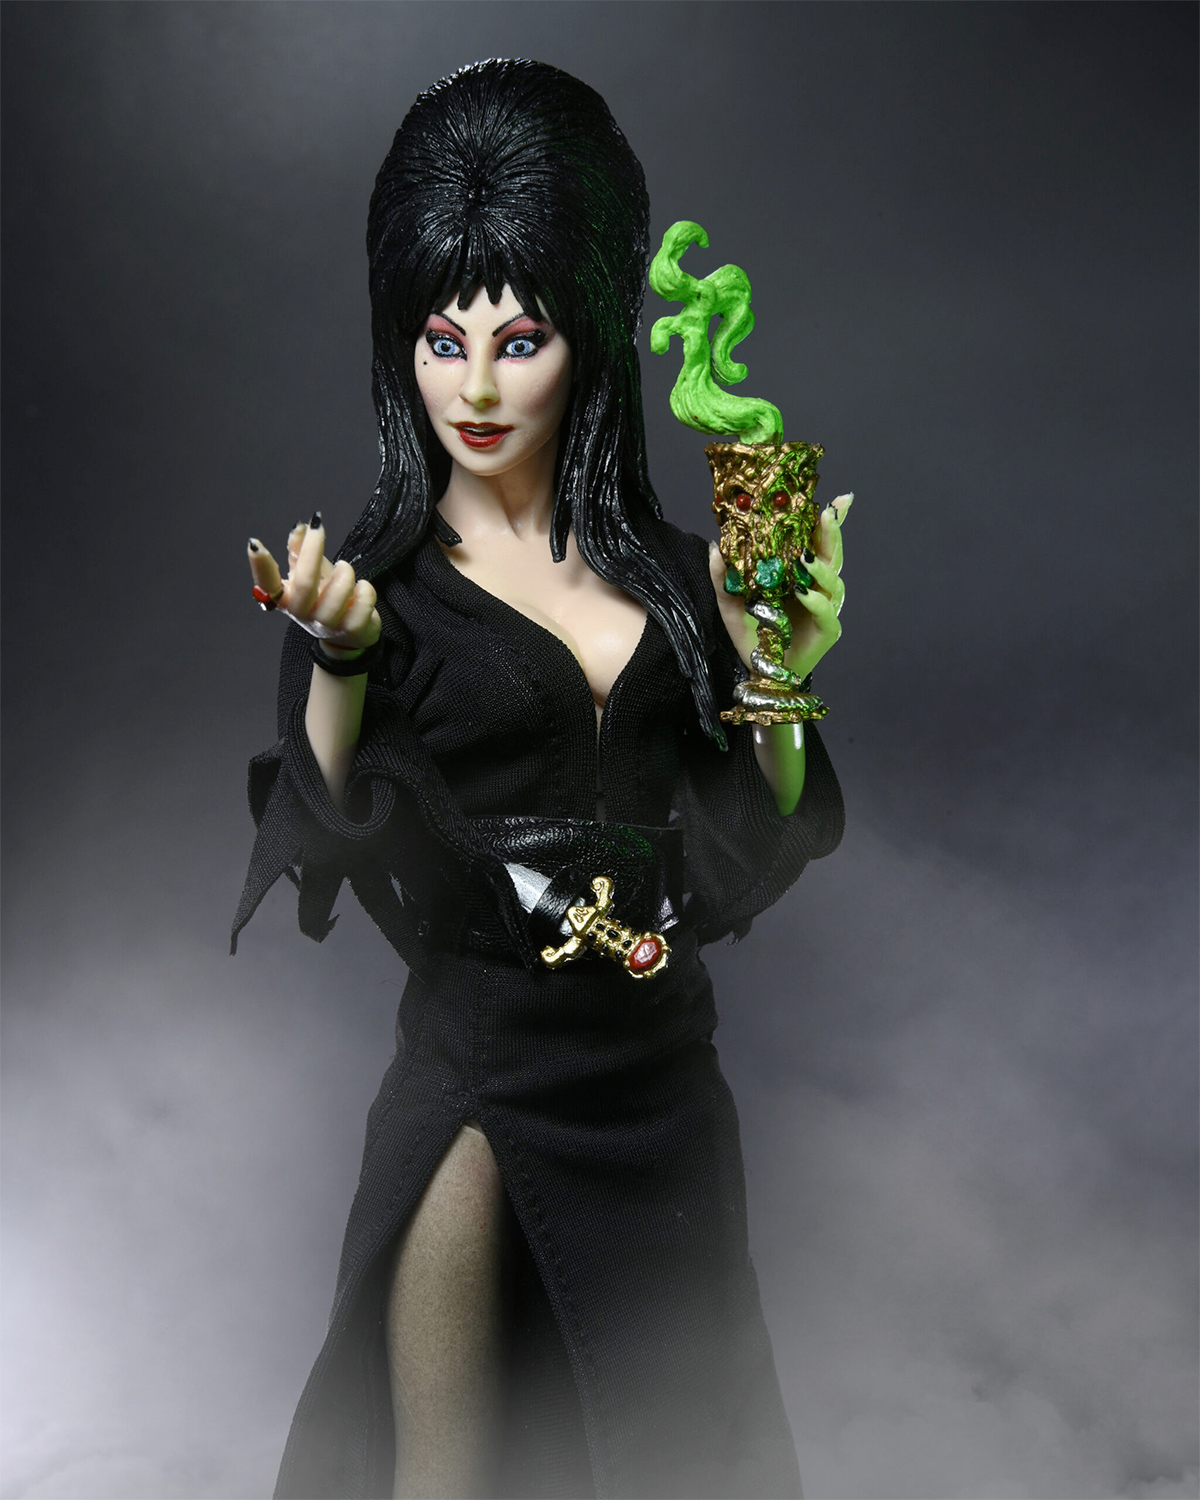 Elvira, Mistress of the Dark 8-Inch Scale Clothed Action Figure